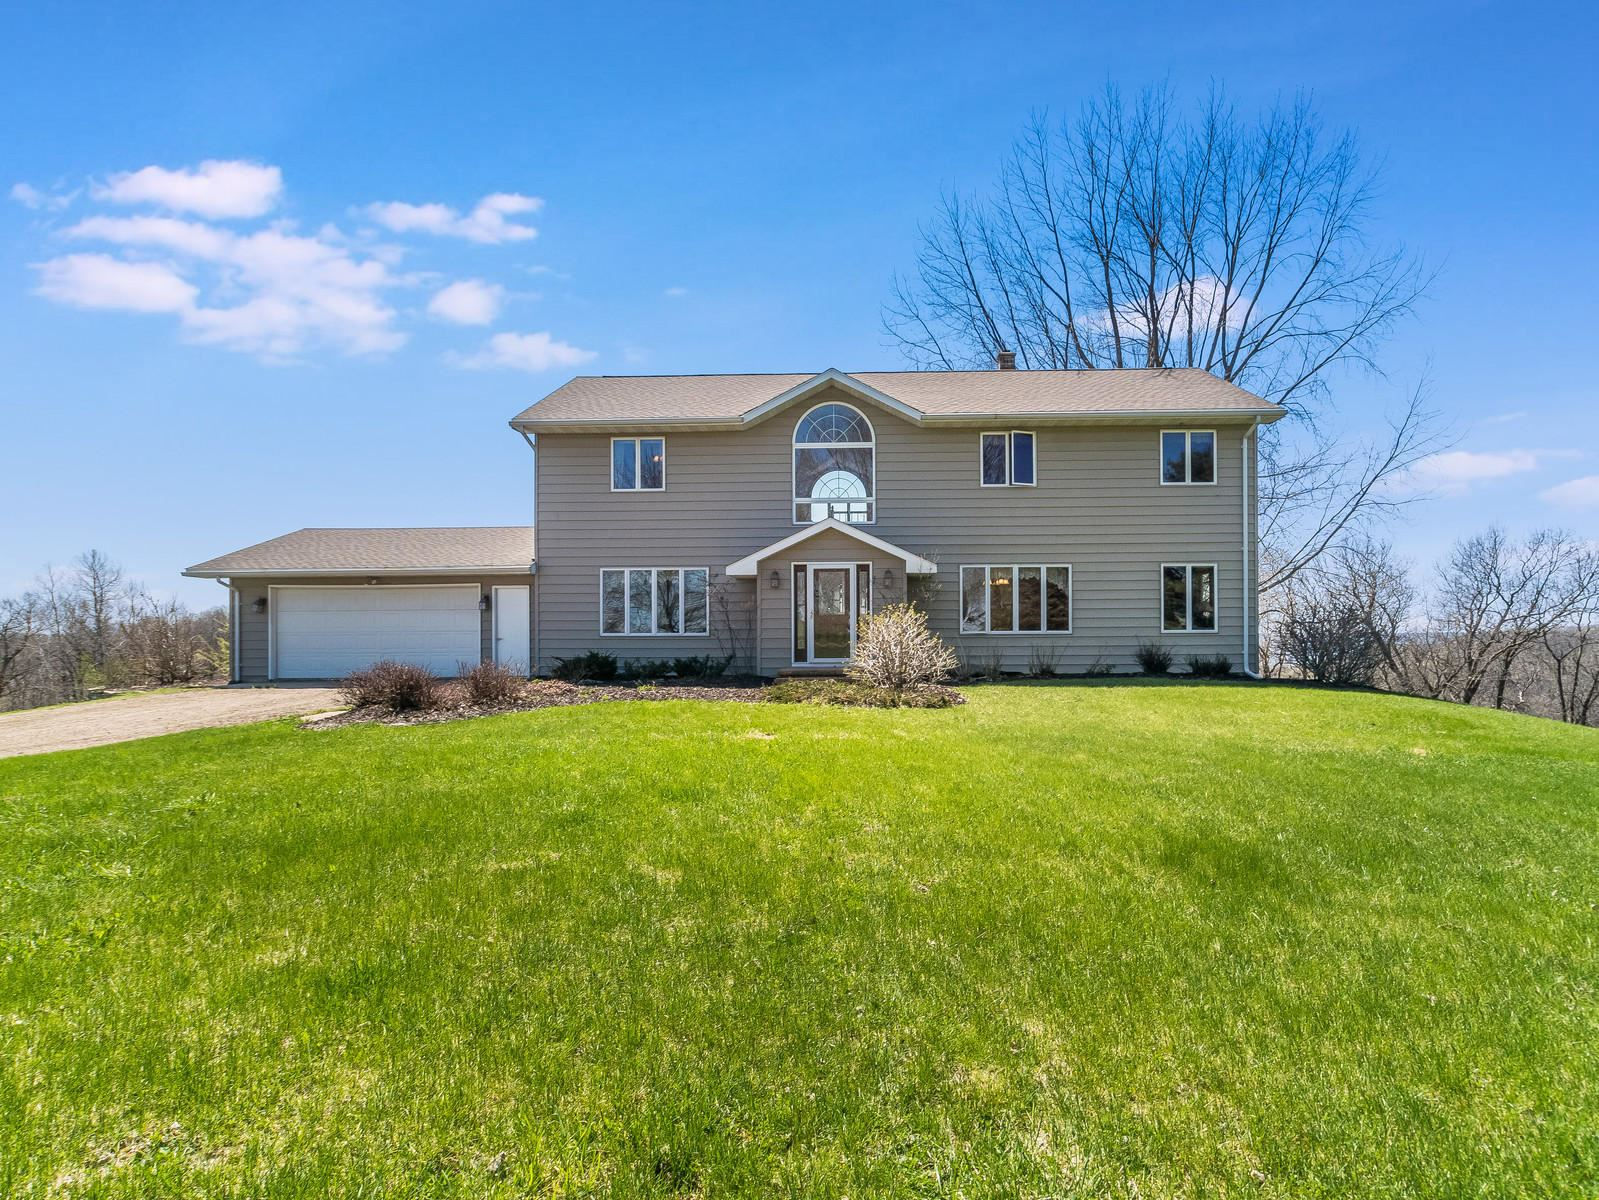 4290 EASTER RD, Shelby, WI 54601 - MLS#: 1688372